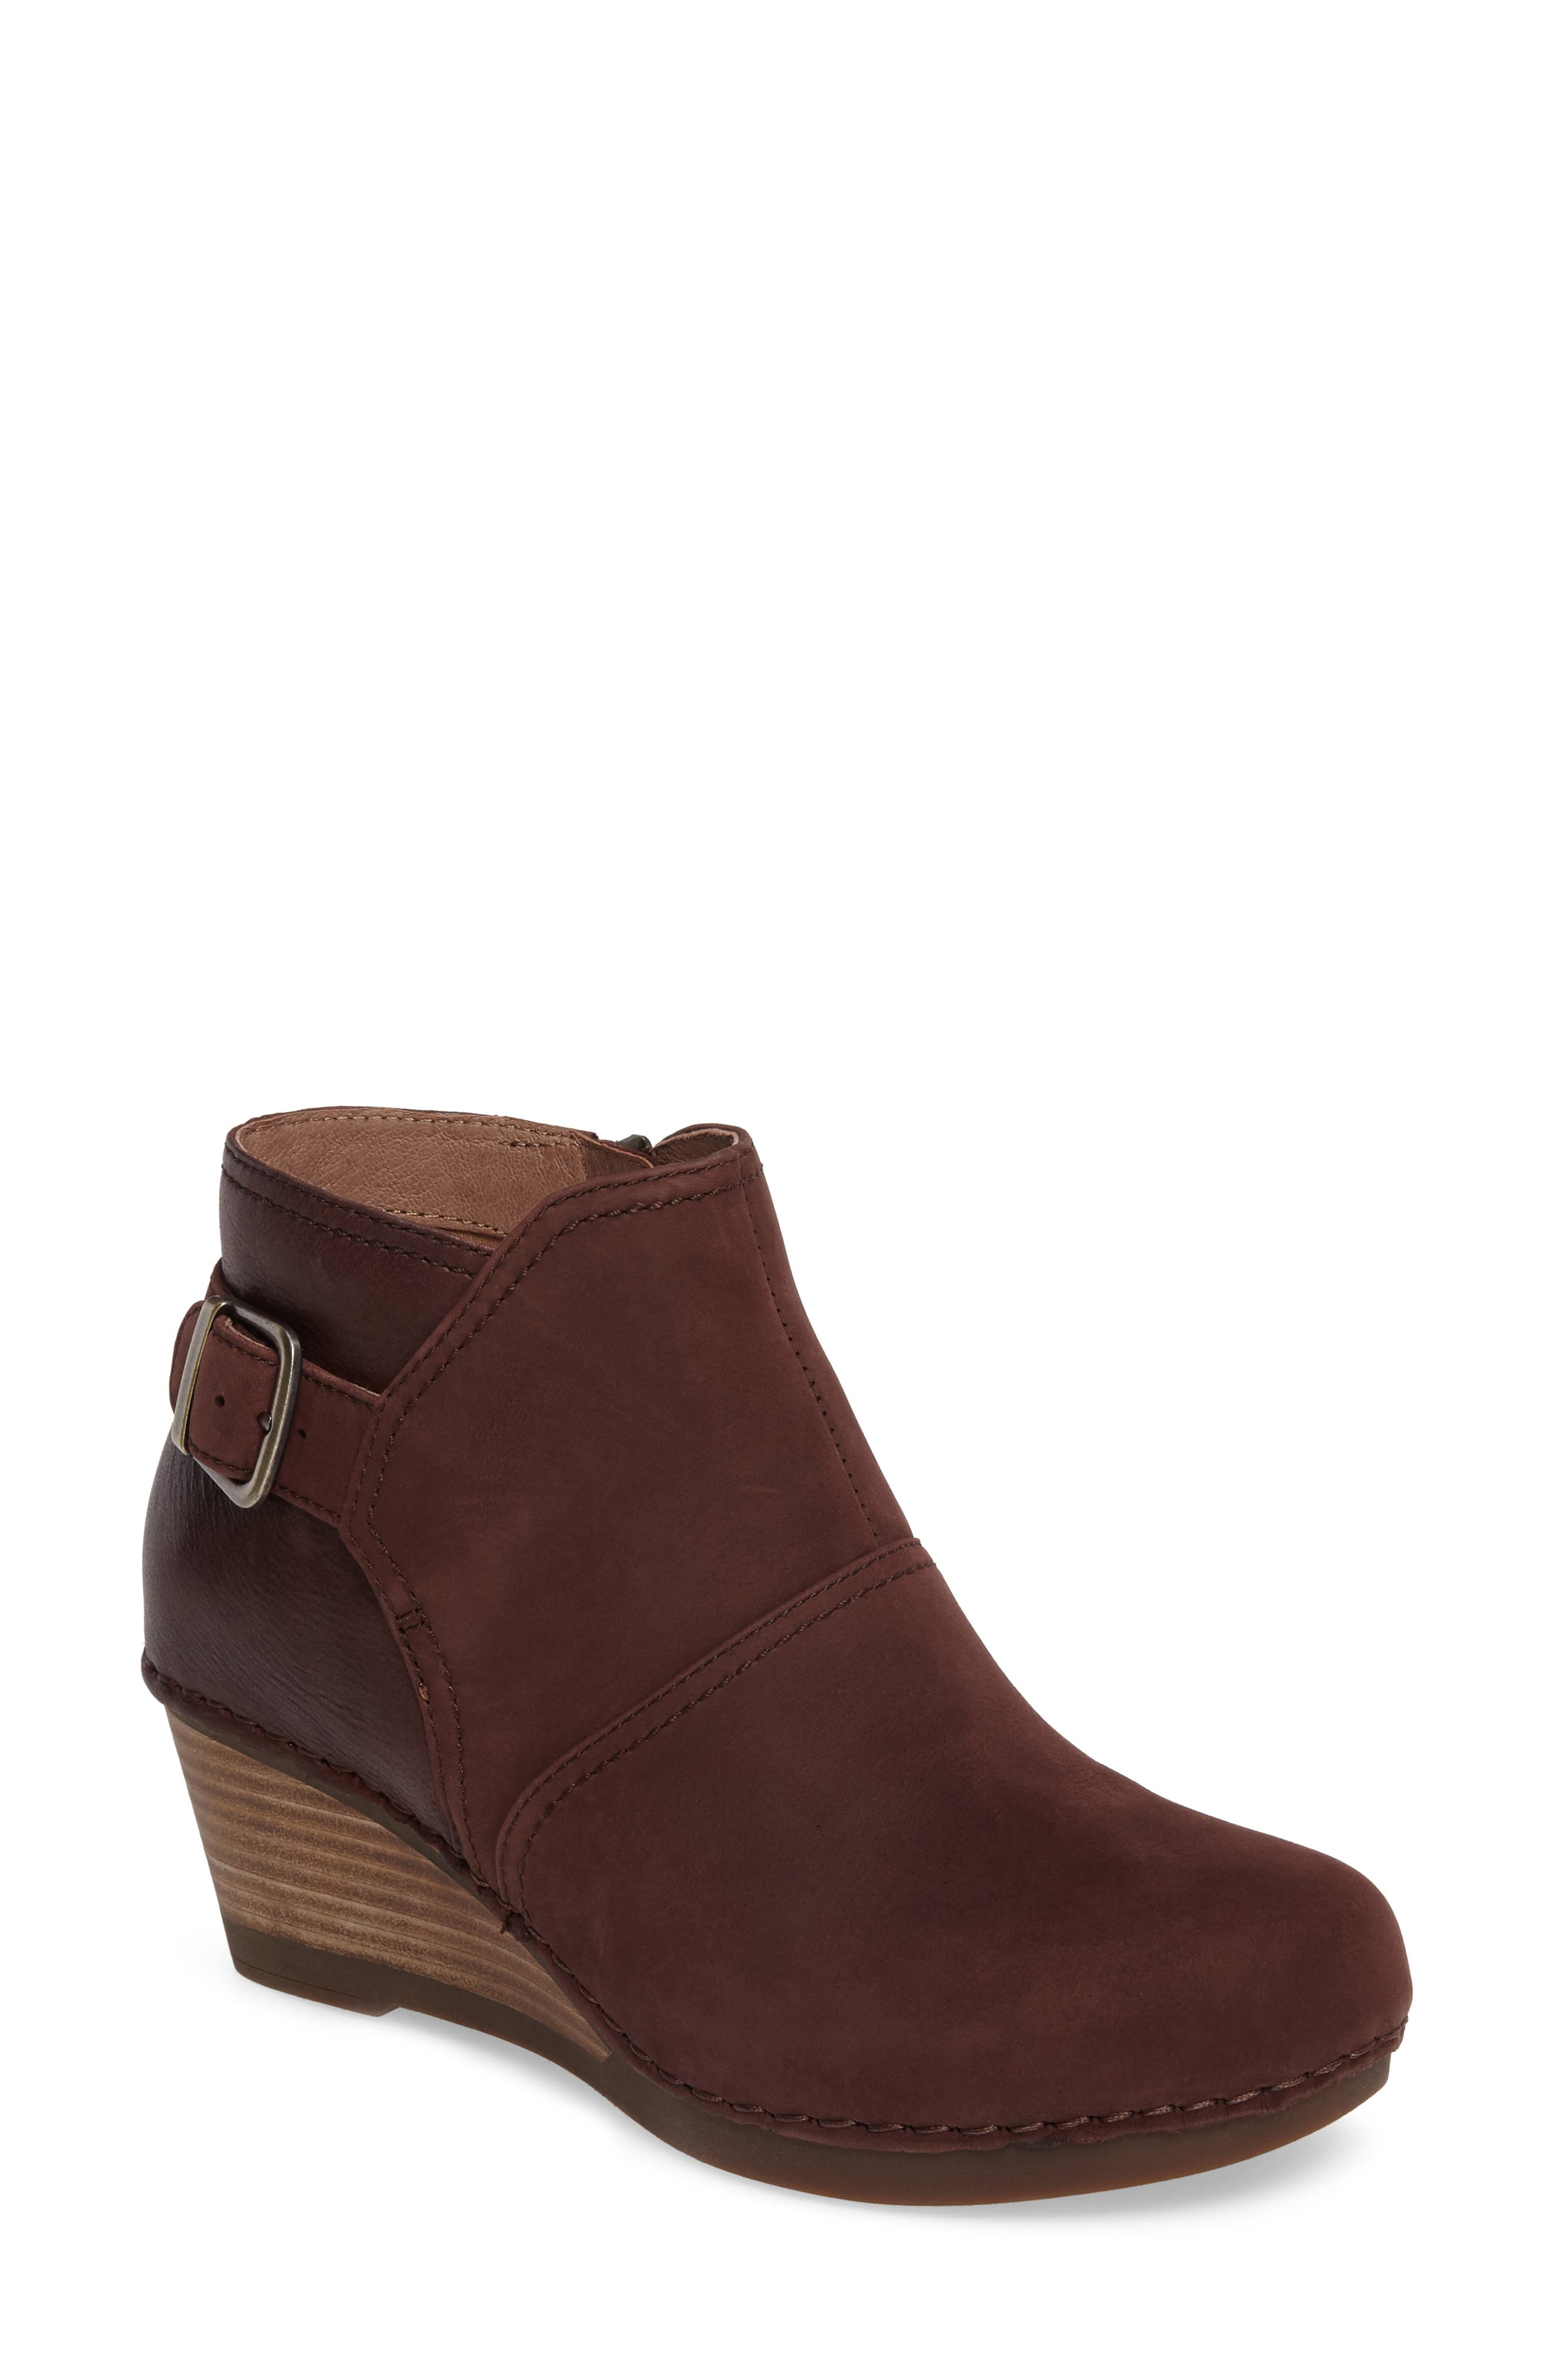 Main Image - Dansko 'Shirley' Wedge Bootie (Women)